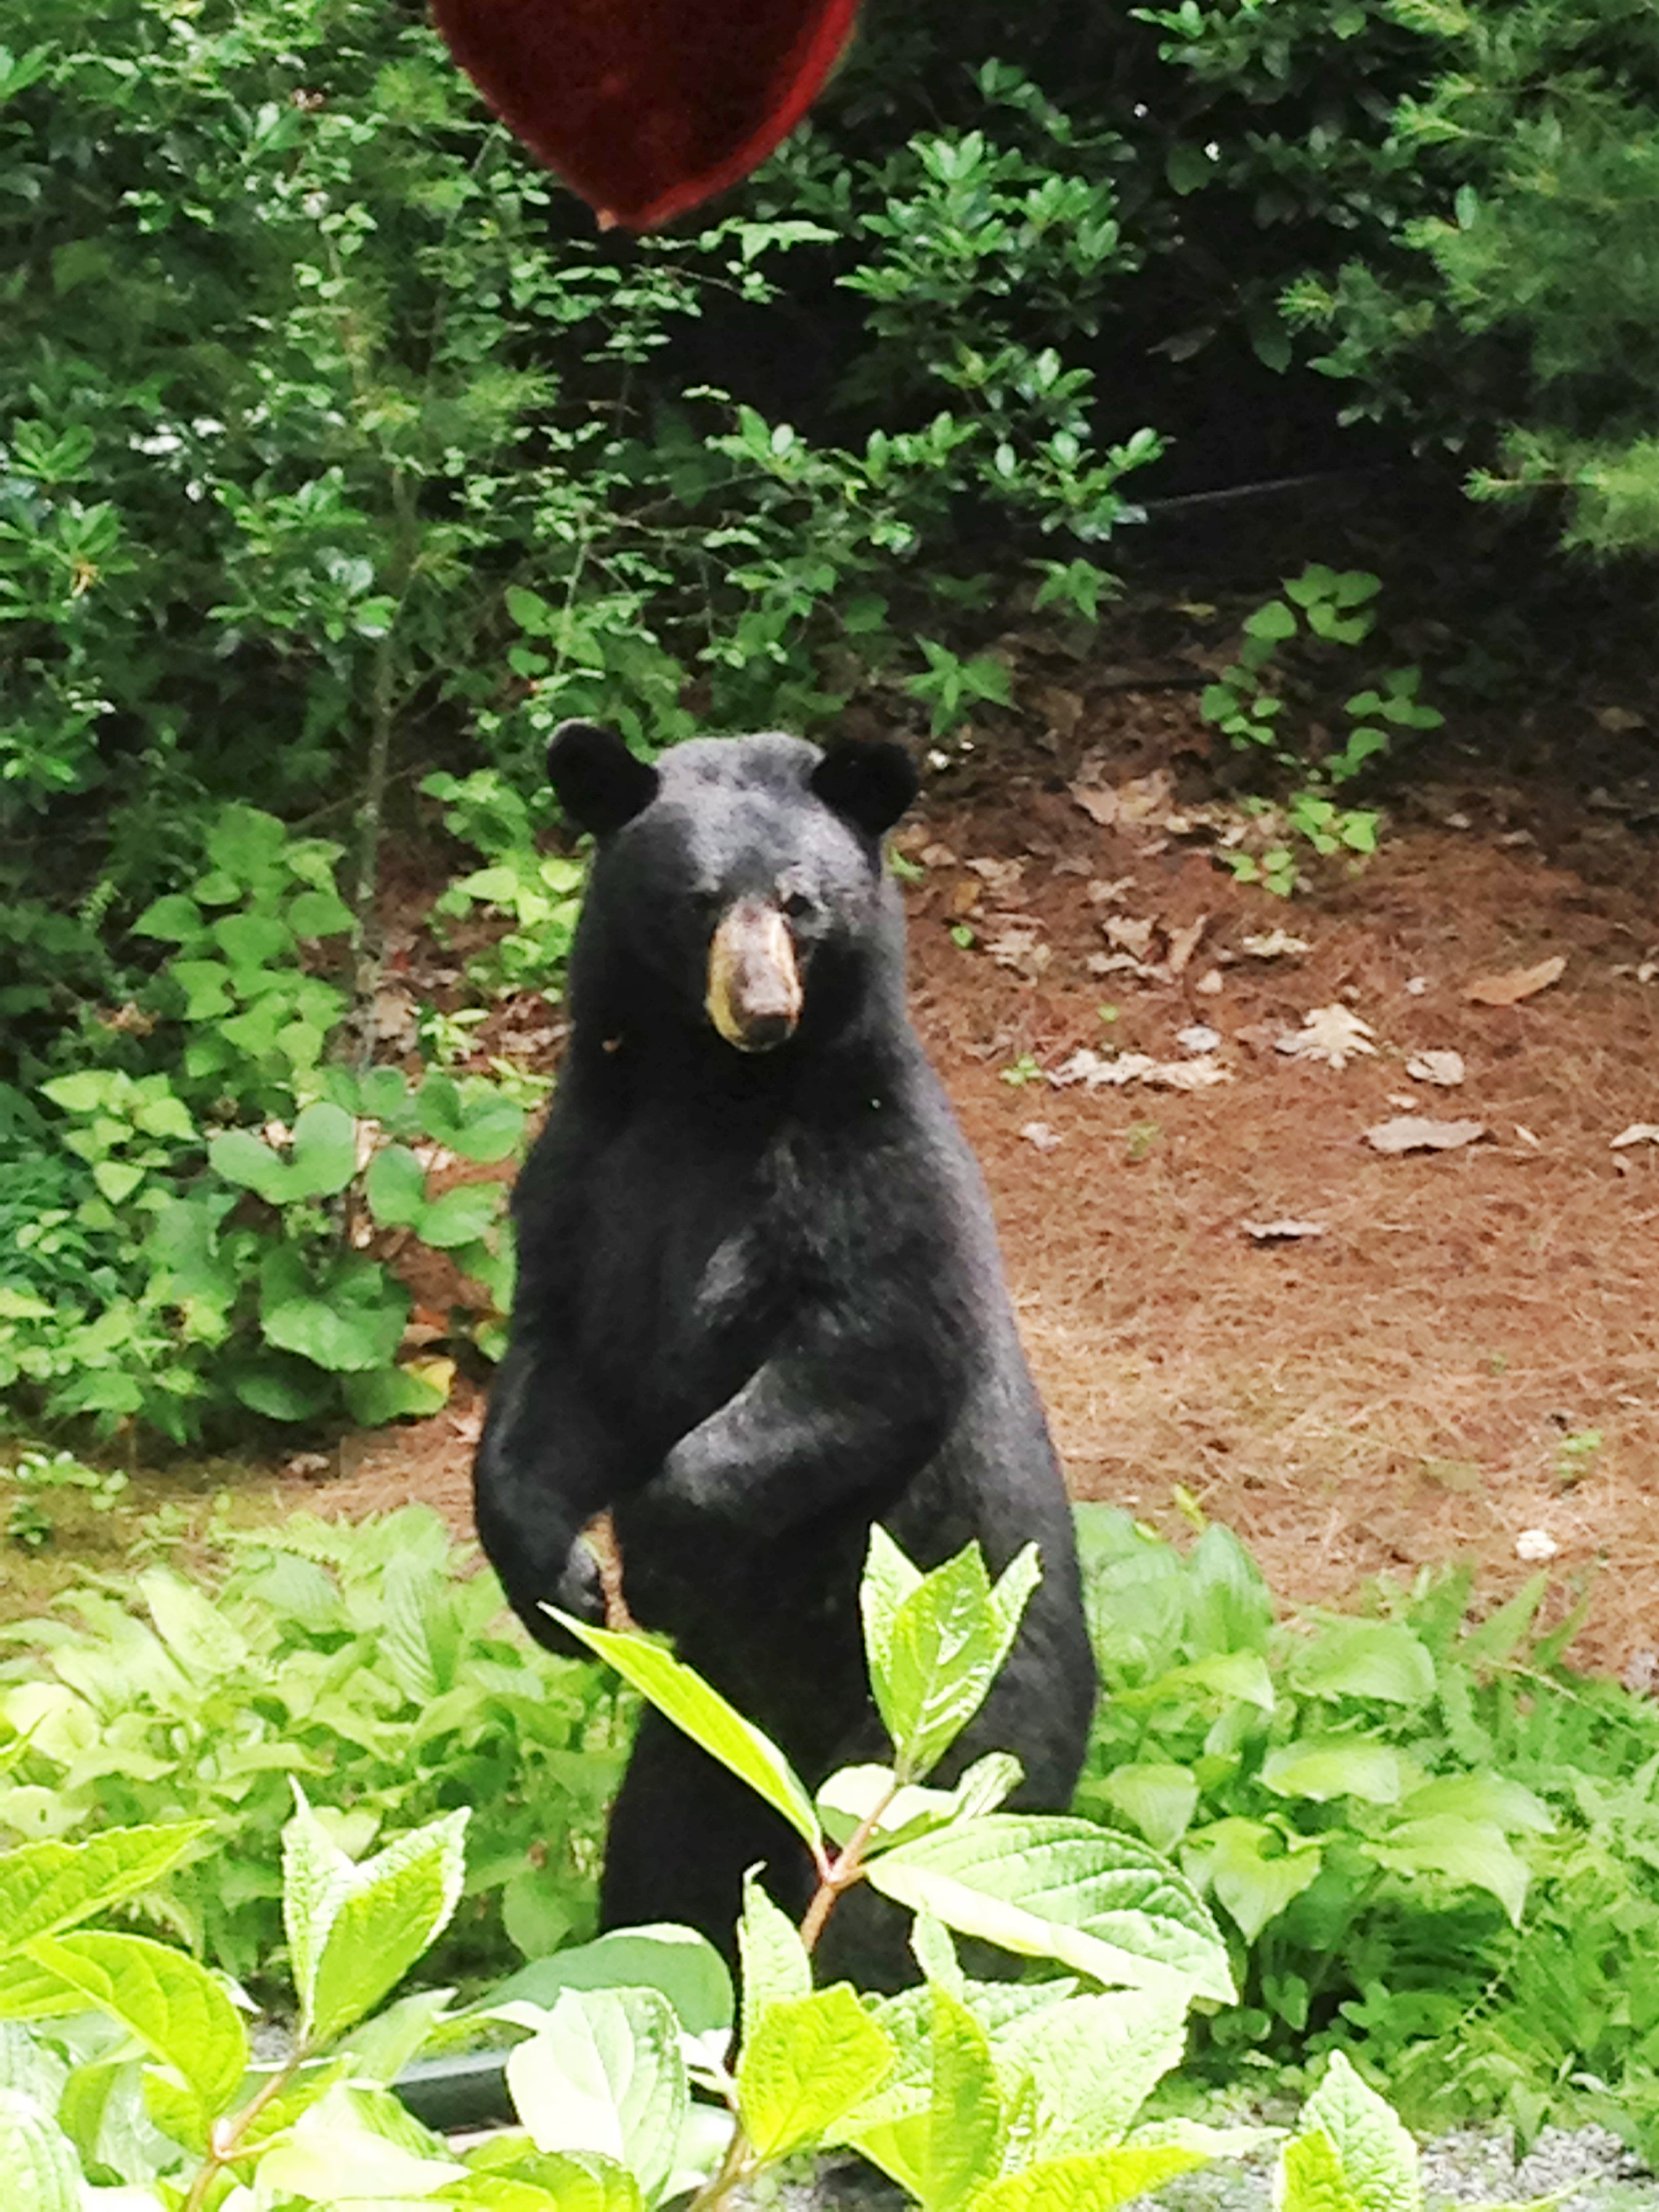 My photo of a black bear raiding a bird feeder in Highlands, NC.